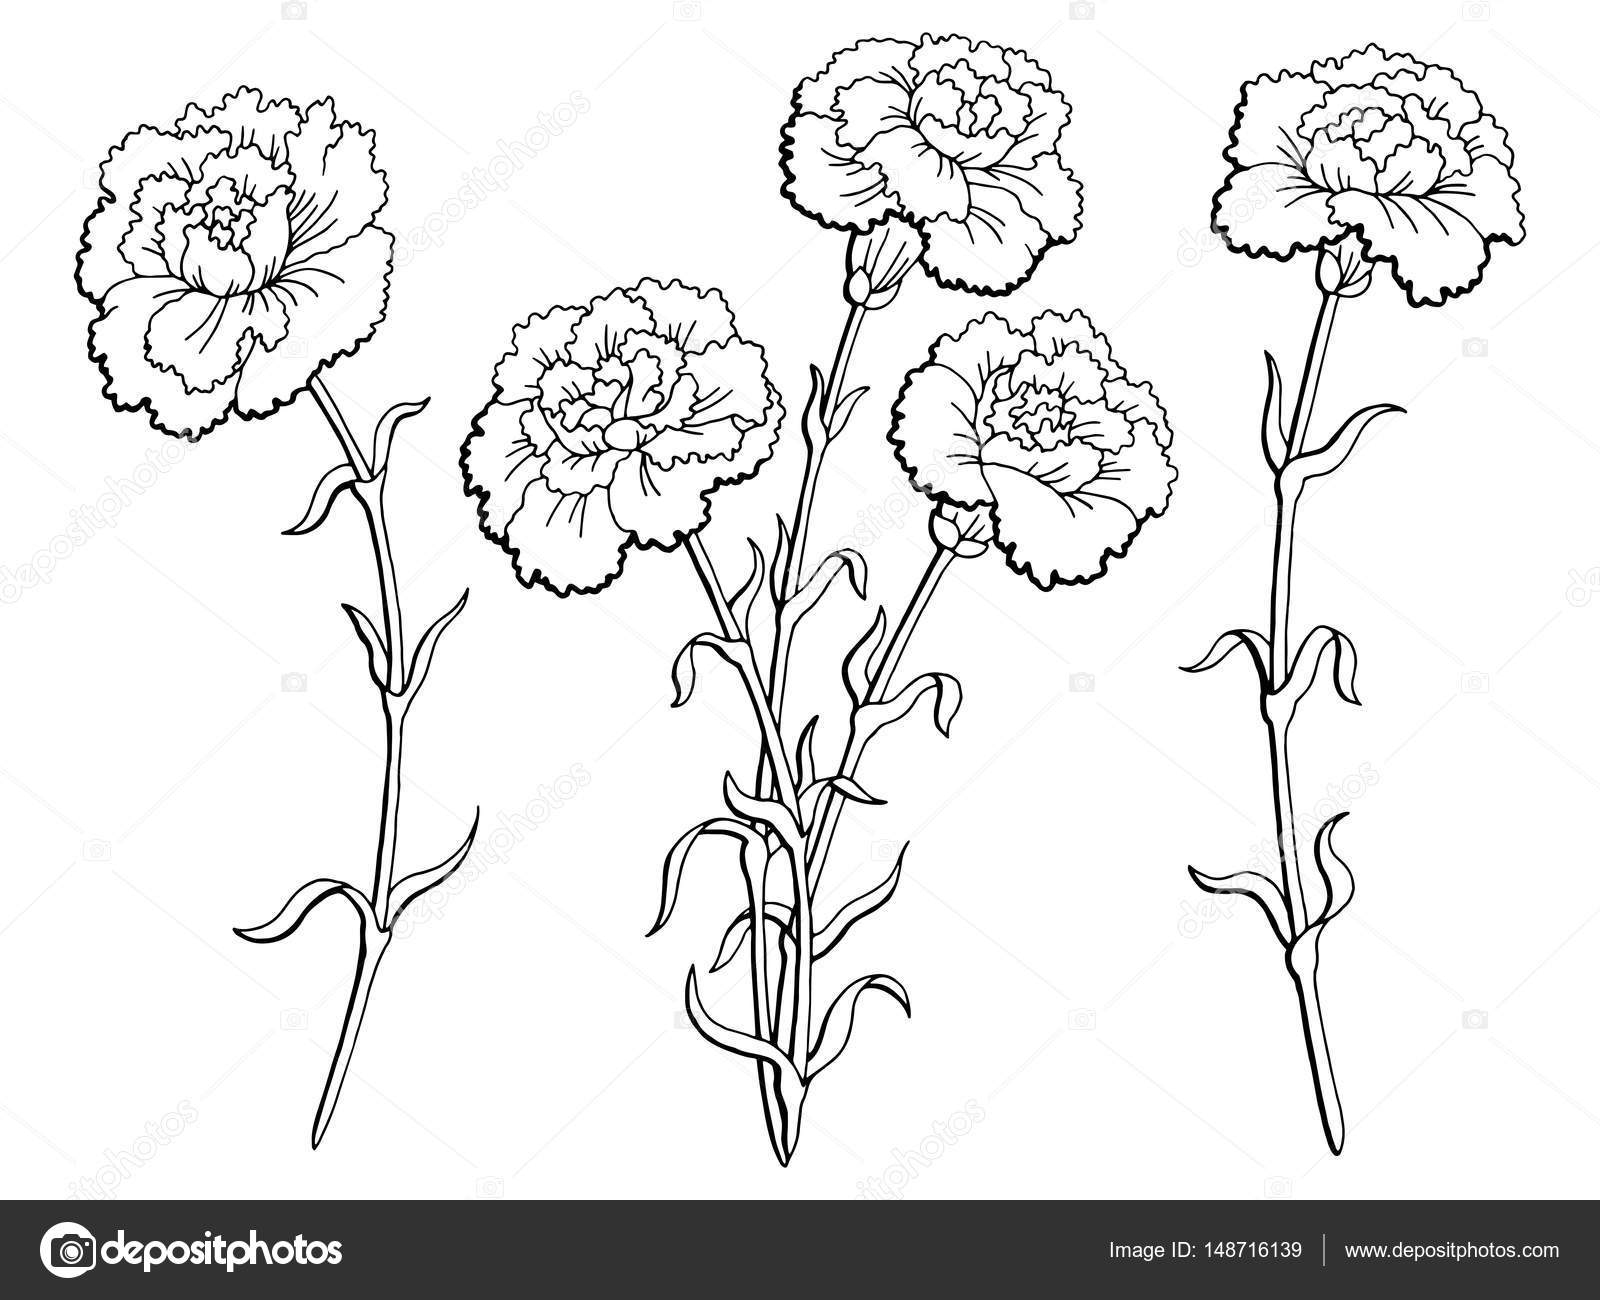 Carnation Flower Drawing At Getdrawings Free For Personal Use